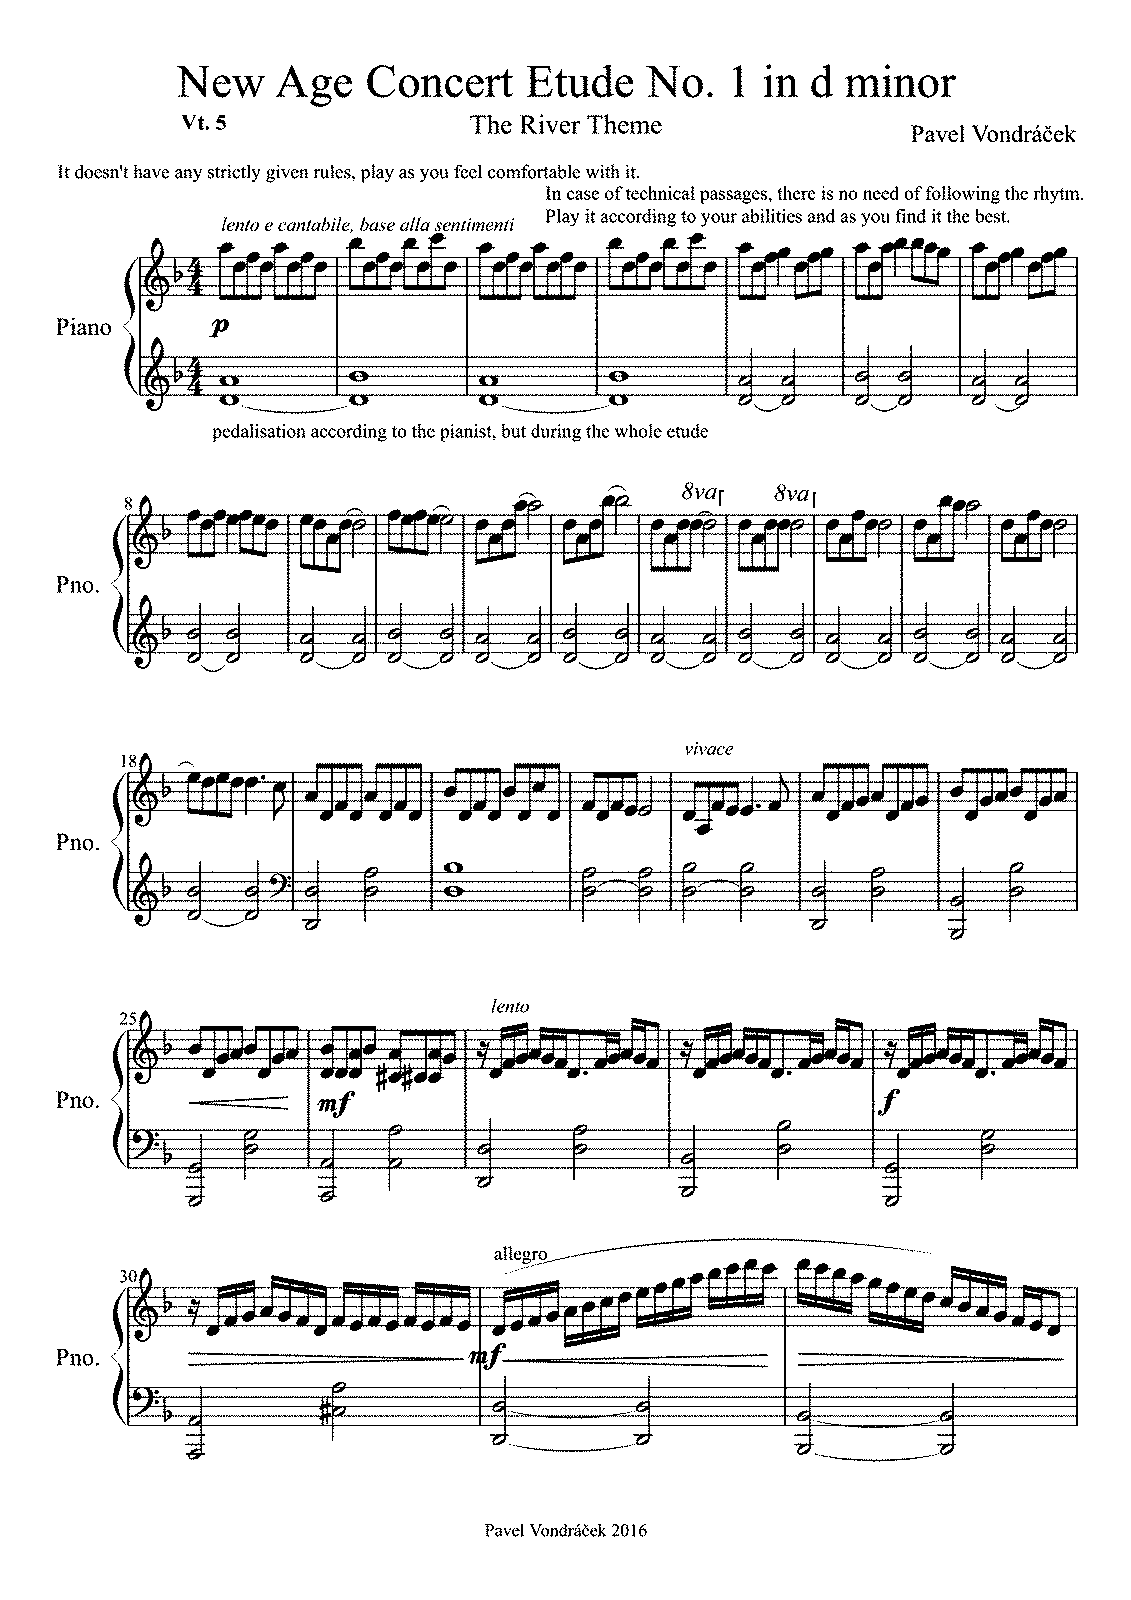 PMLP682388-Pavel Vondracek - New Age Concert Etude No 1 d minor.pdf